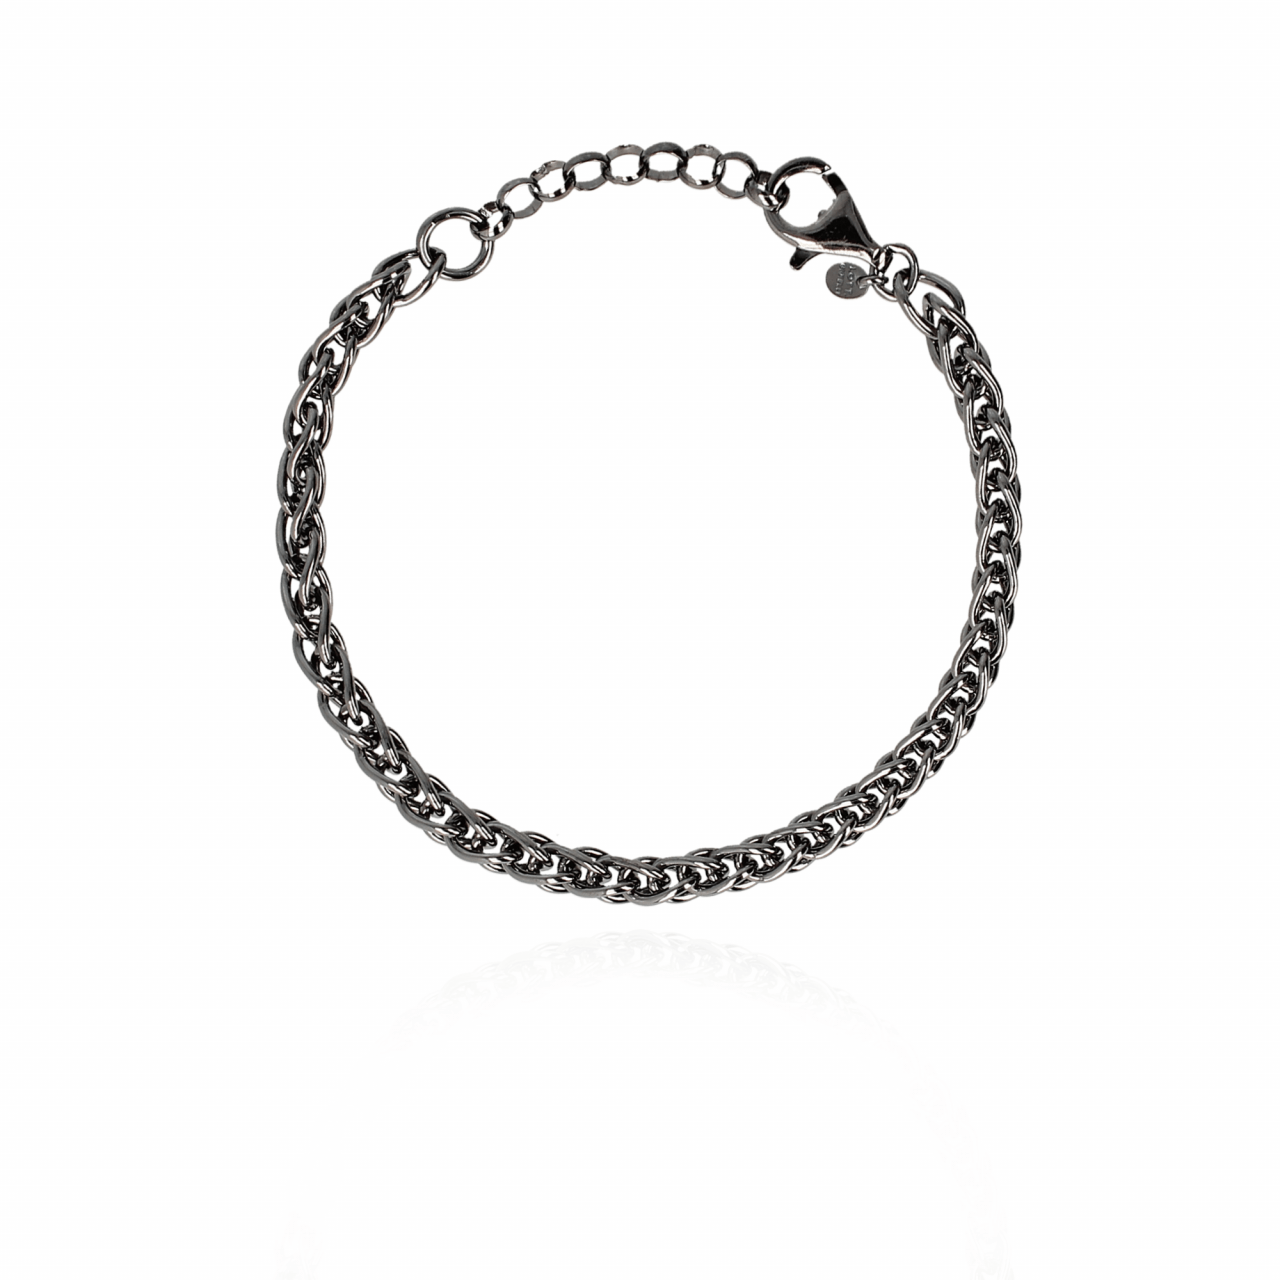 Men Jack Bracelet L Black 21 cm